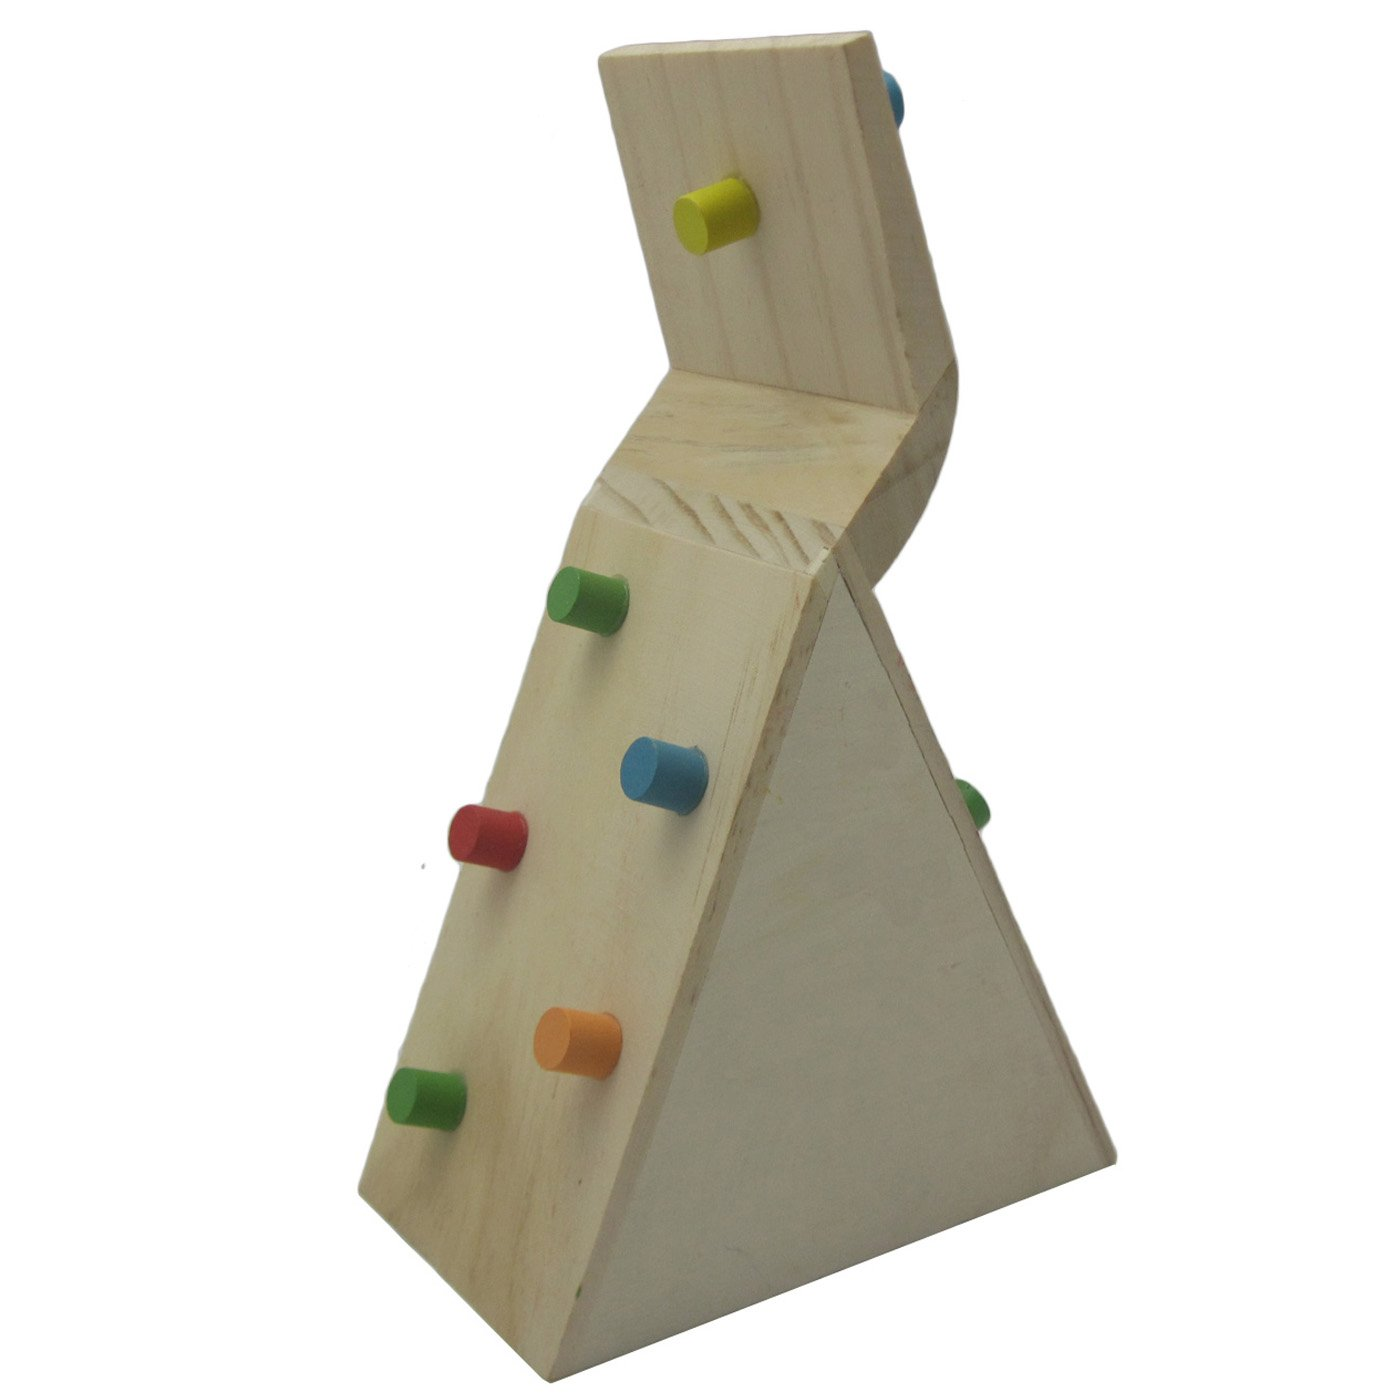 Alfie Pet by Petoga Couture - Small Animal Playground - Jami Wooden Climbing Hideout Toy for Small Animals like Dwarf Hamster and Mouse by Alfie (Image #3)